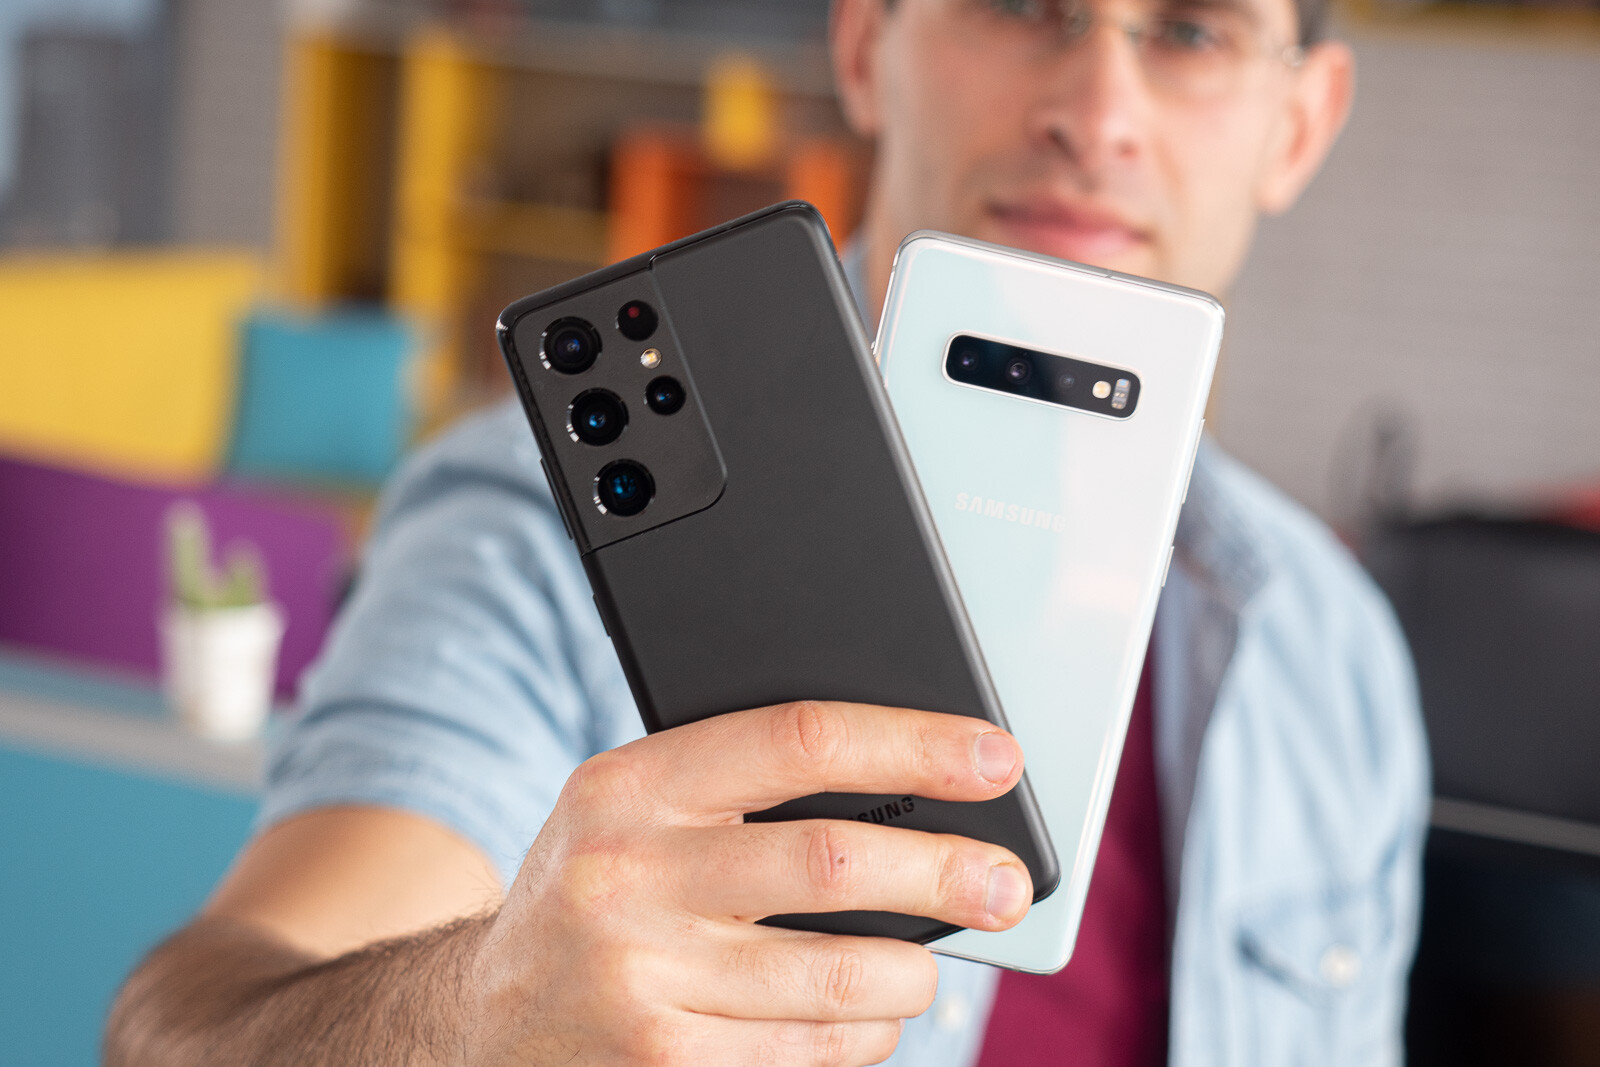 Samsung Galaxy S21 Ultra vs Galaxy S10 Plus